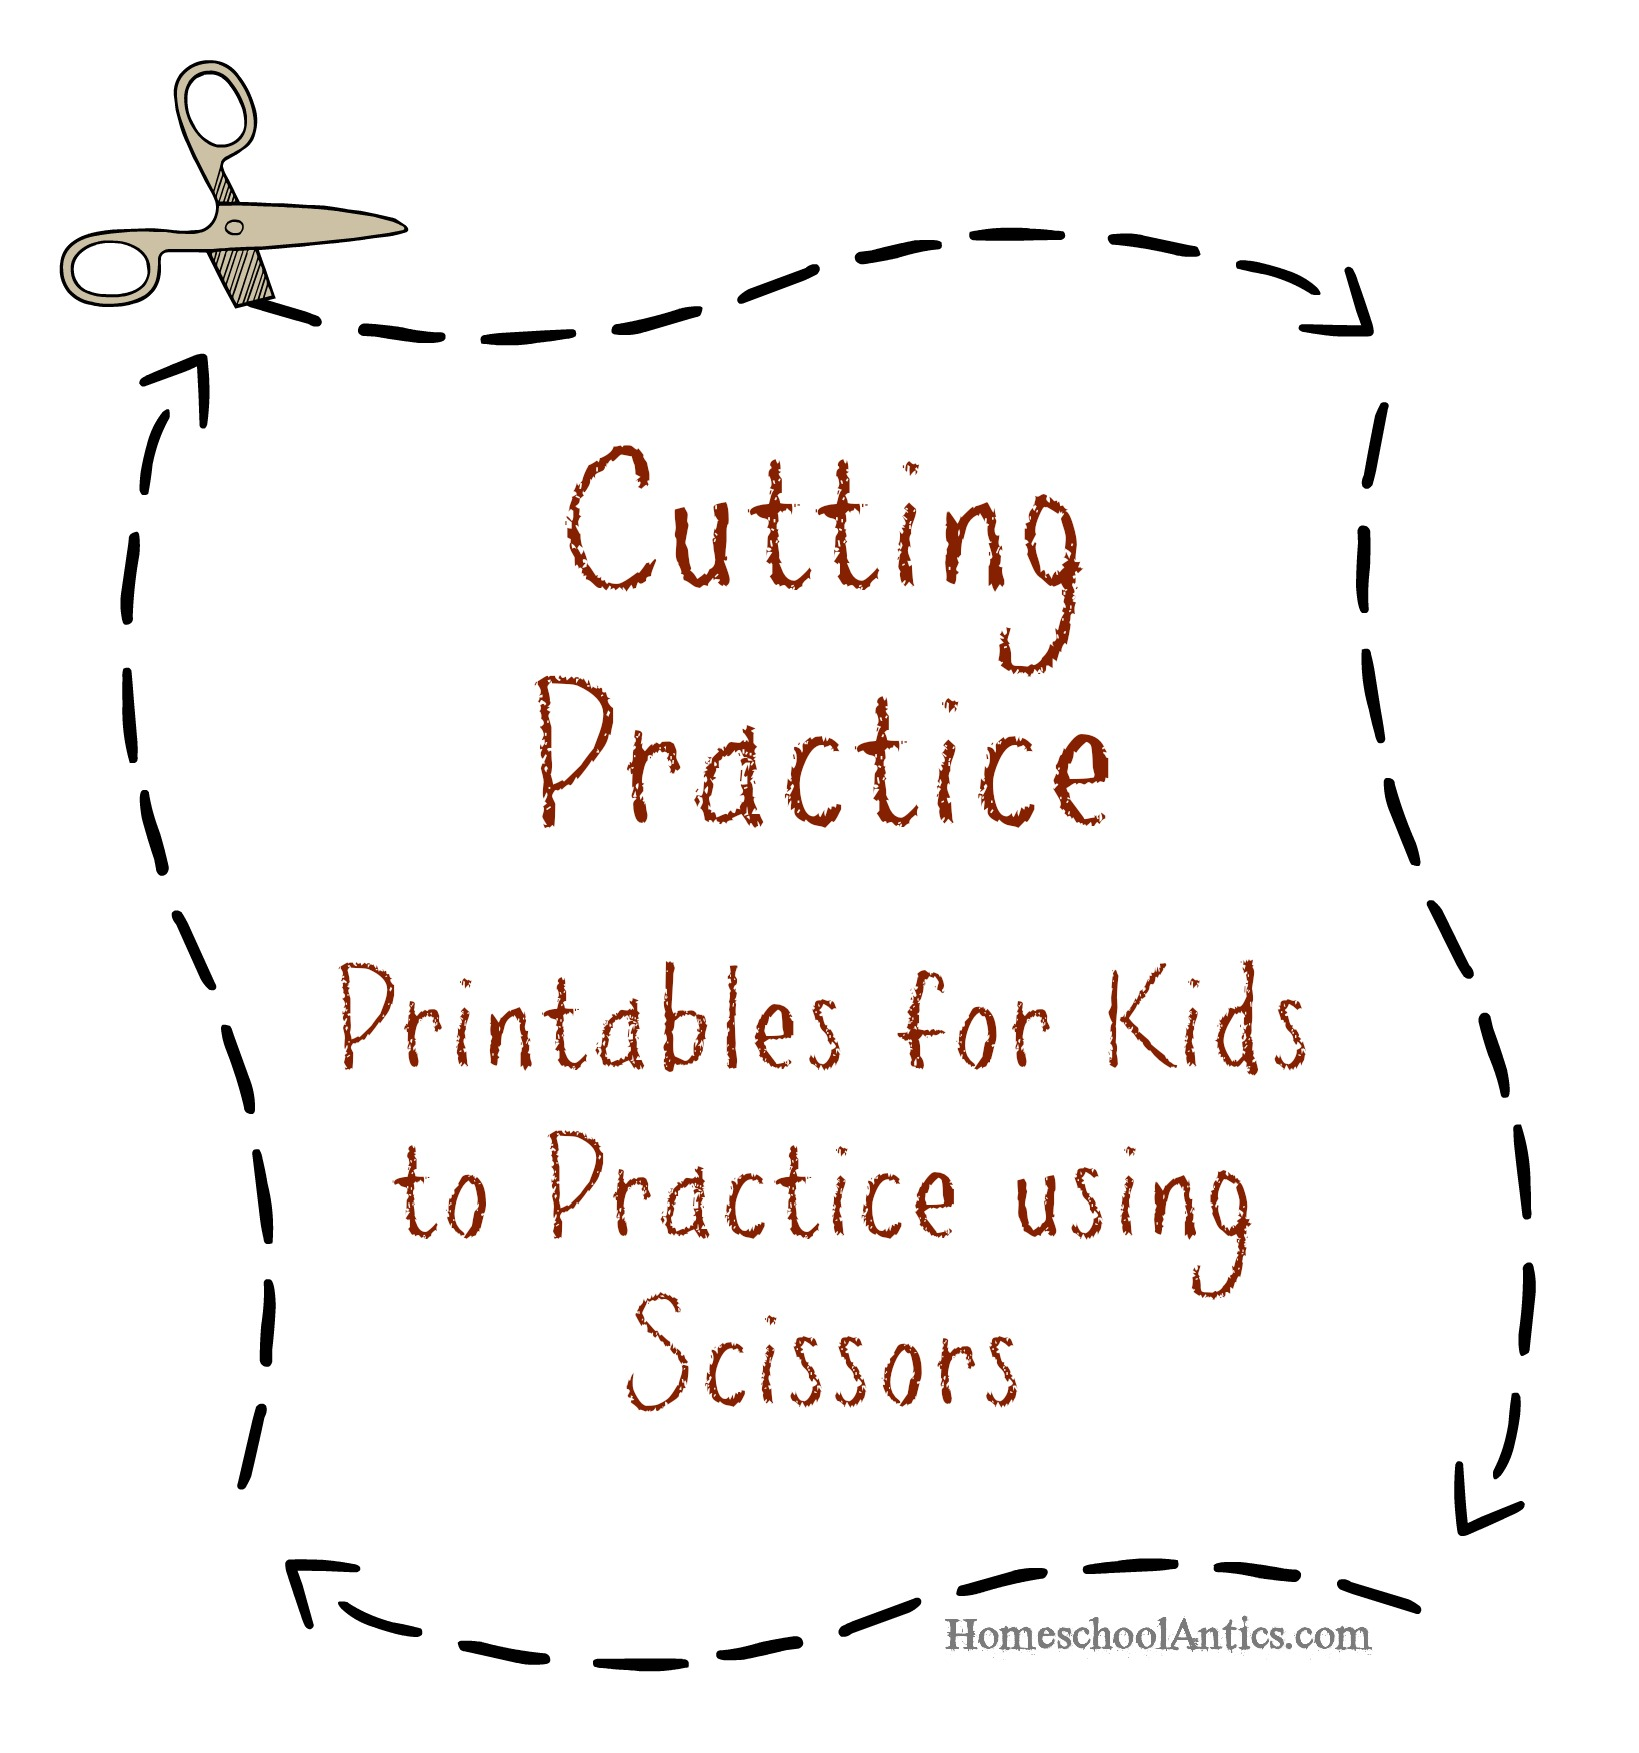 Worksheets Cutting Worksheets For Preschool cutting practice printables